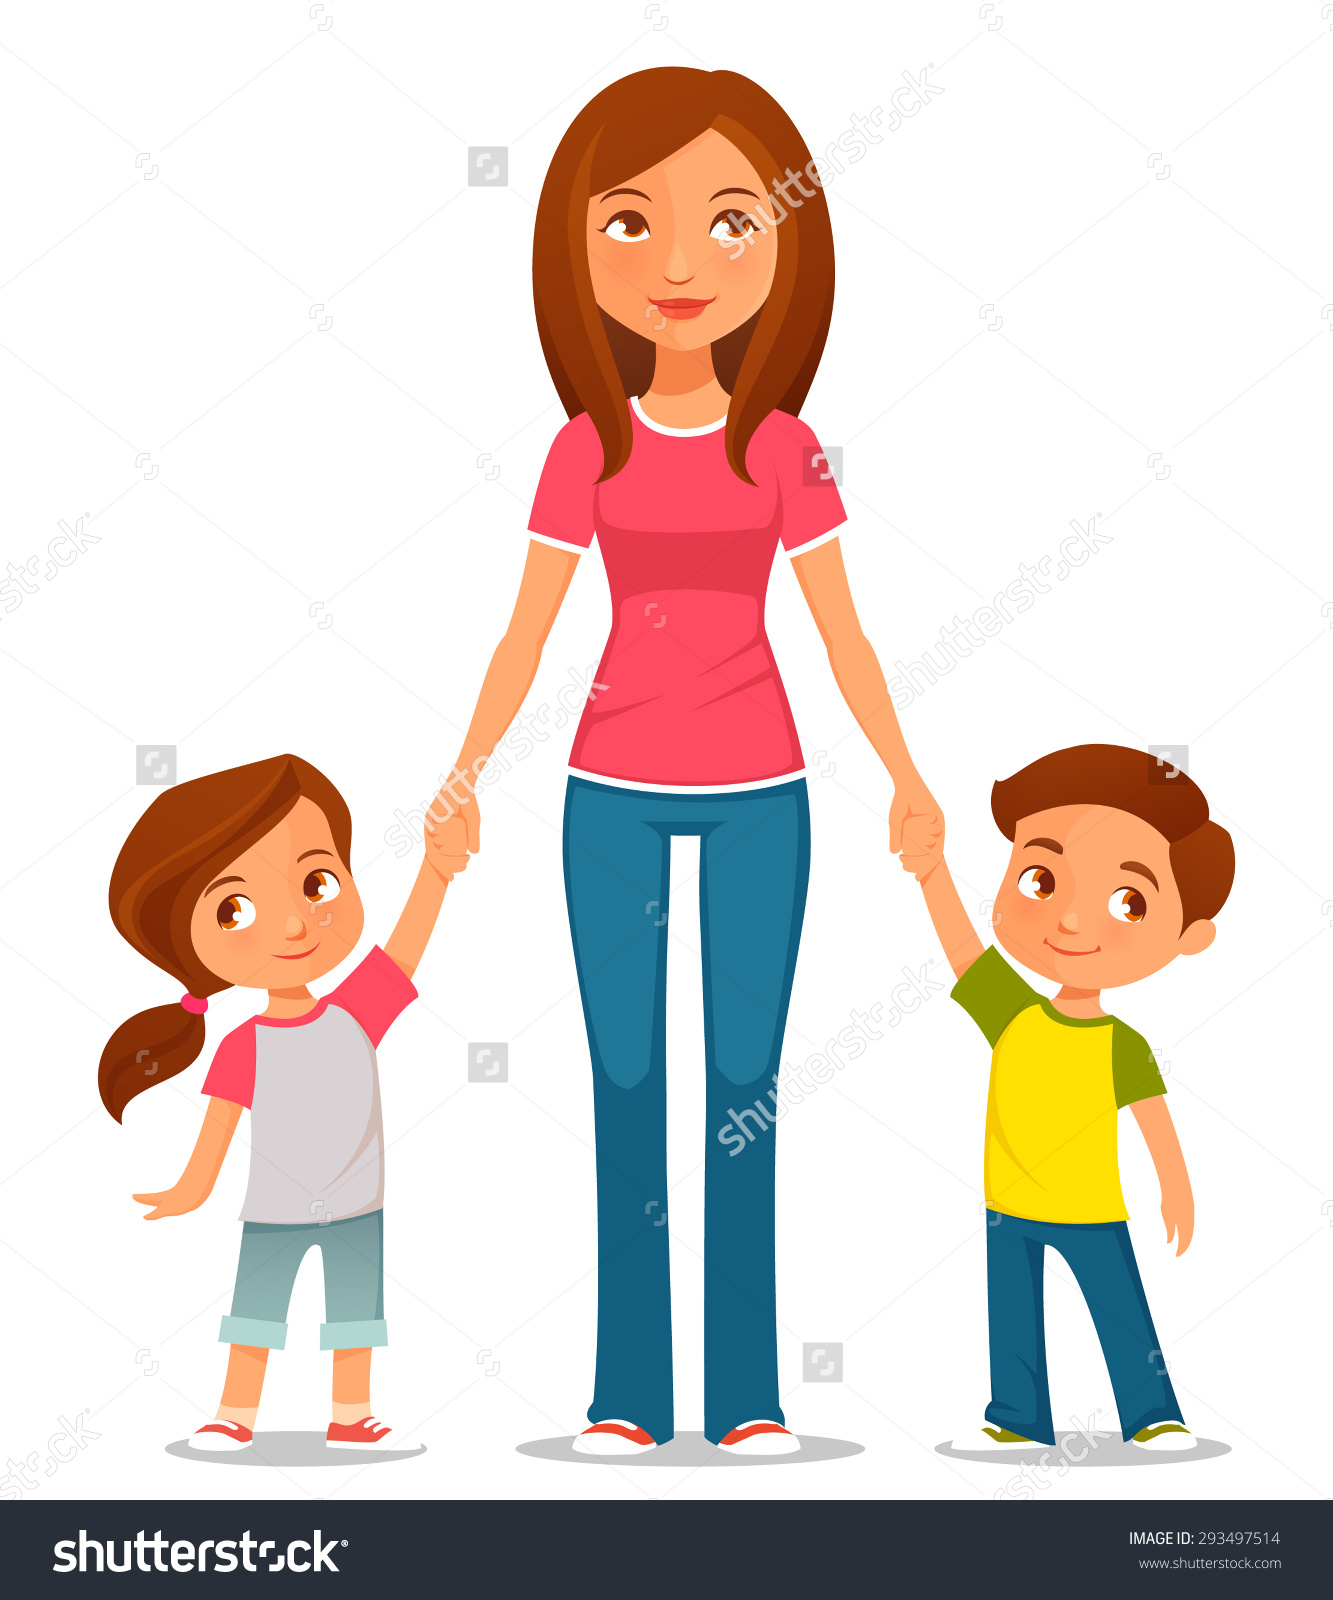 Clipart mom with kids jpg free library Clipart mom and kids - ClipartFest jpg free library